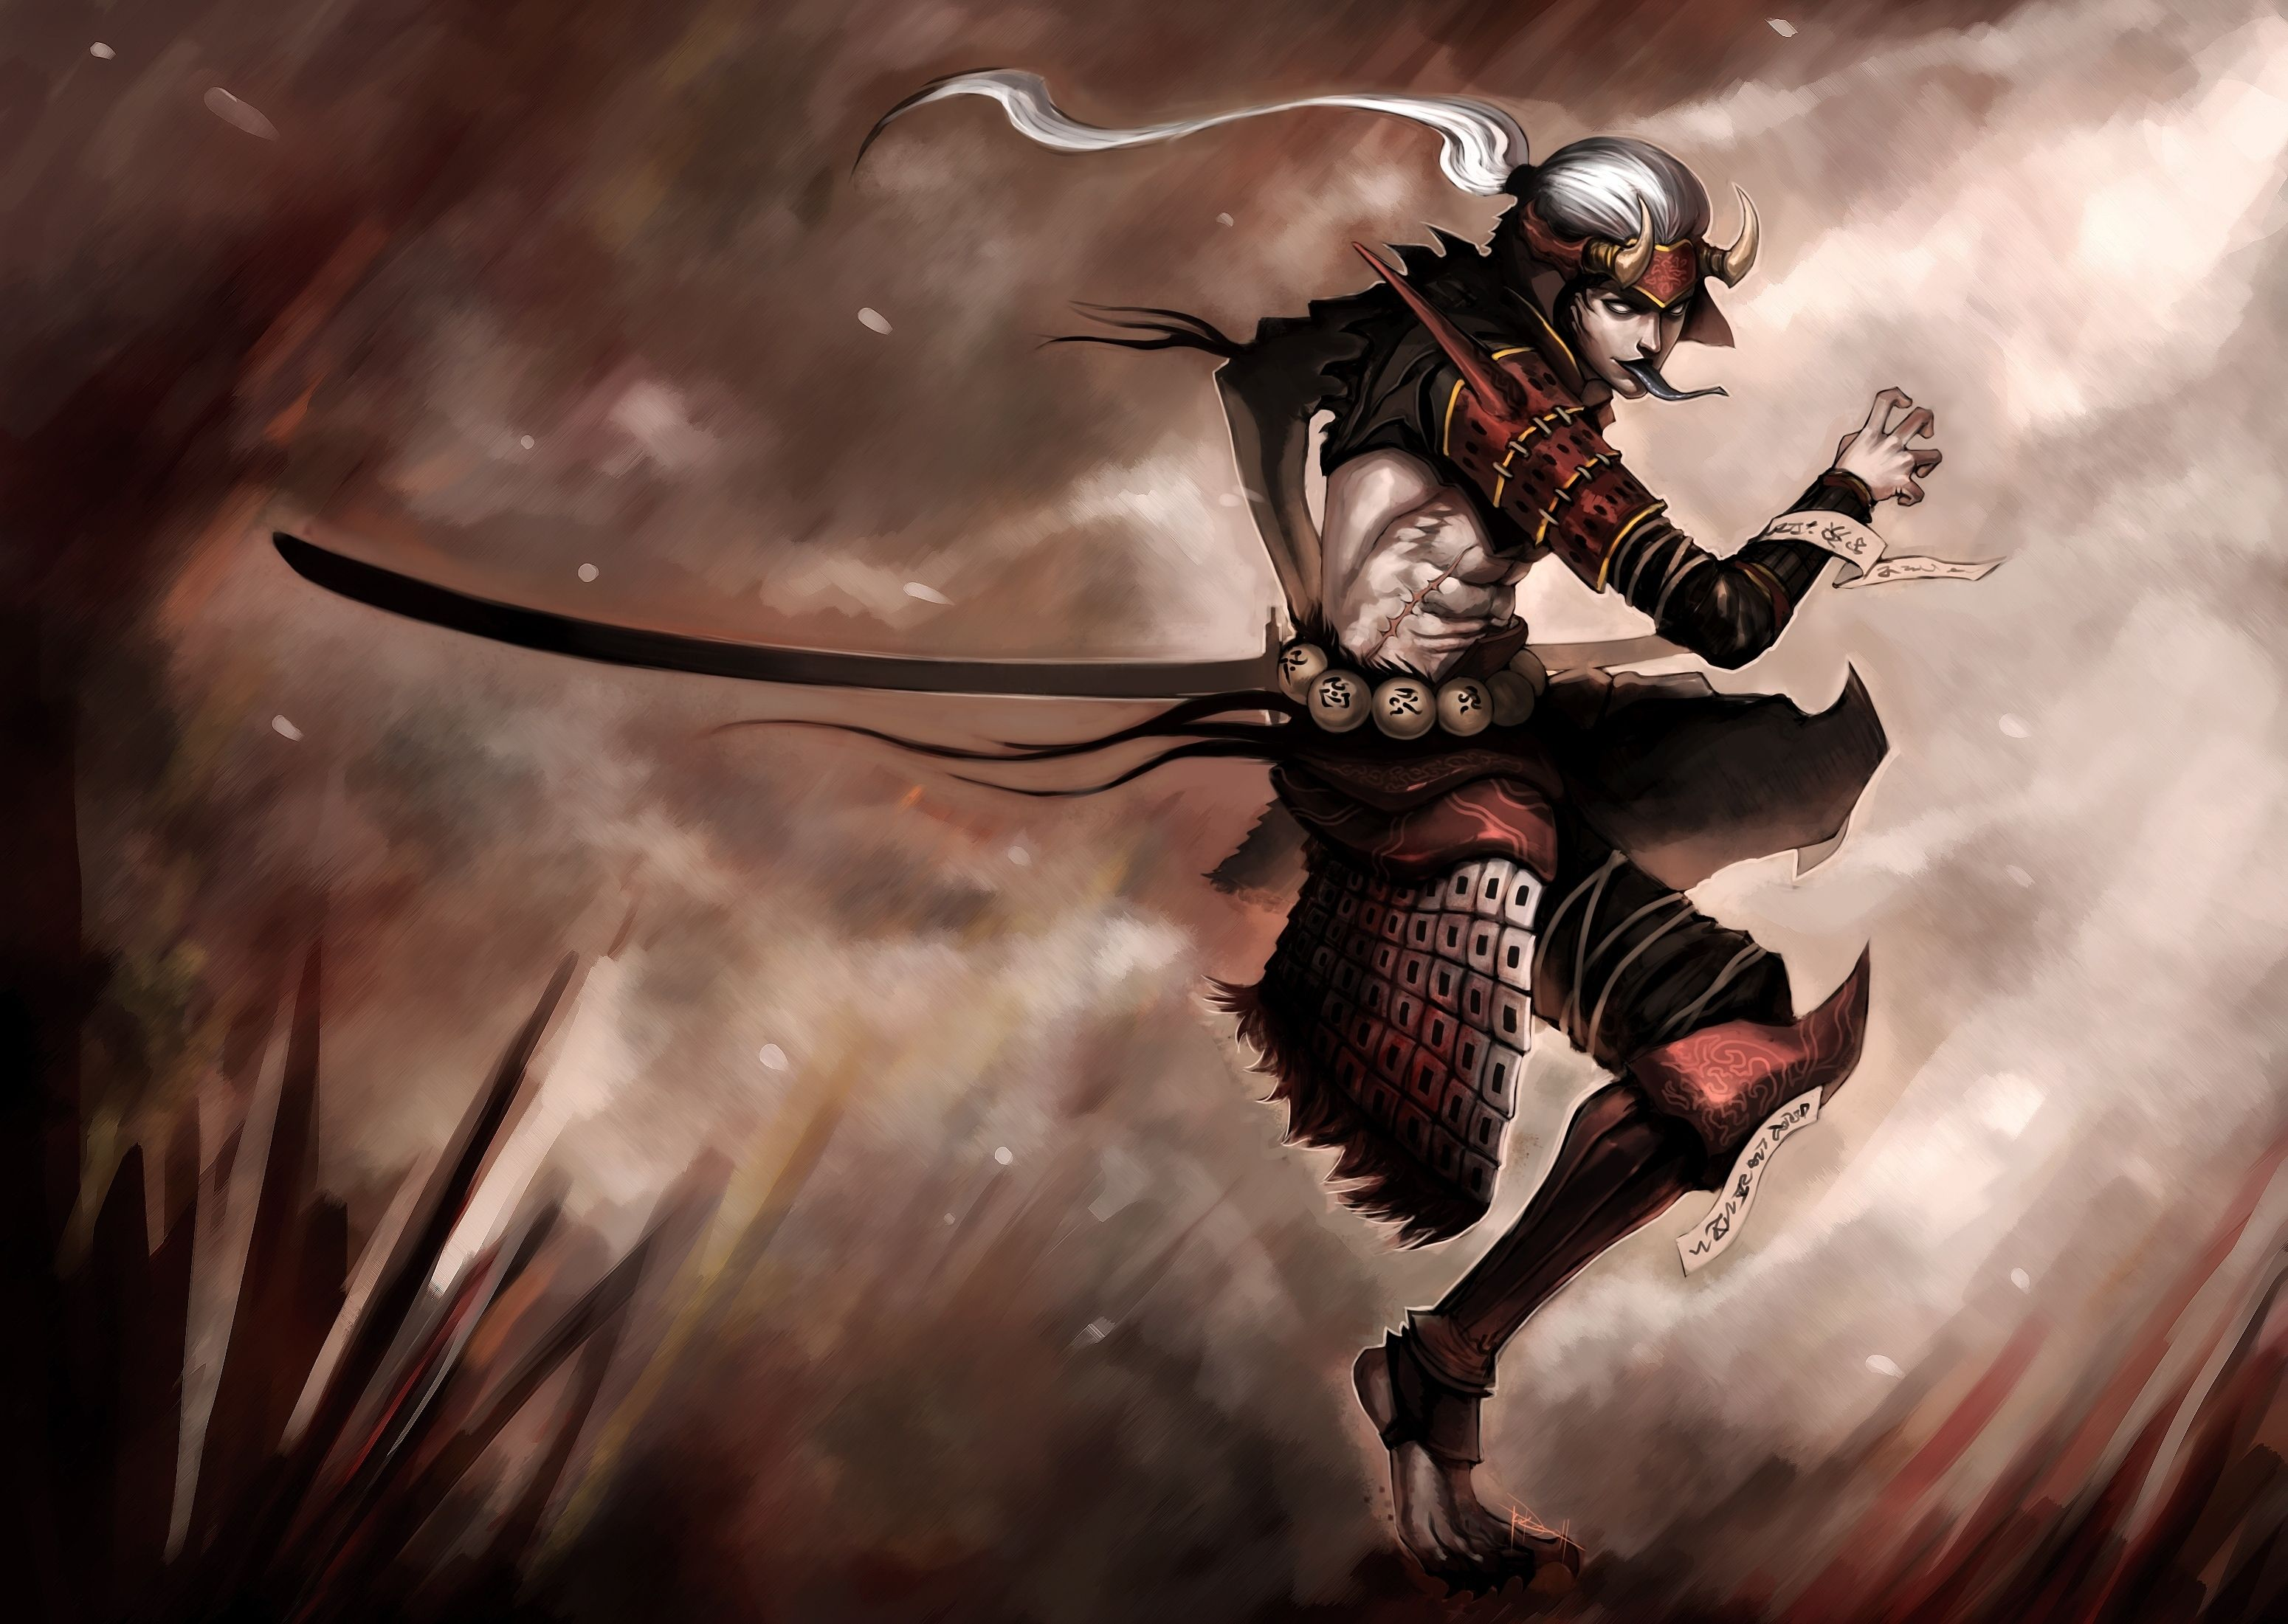 3100x2201 Warriors Men Sabre Fantasy warrior demon dark wallpaper | 3100x2201 ...